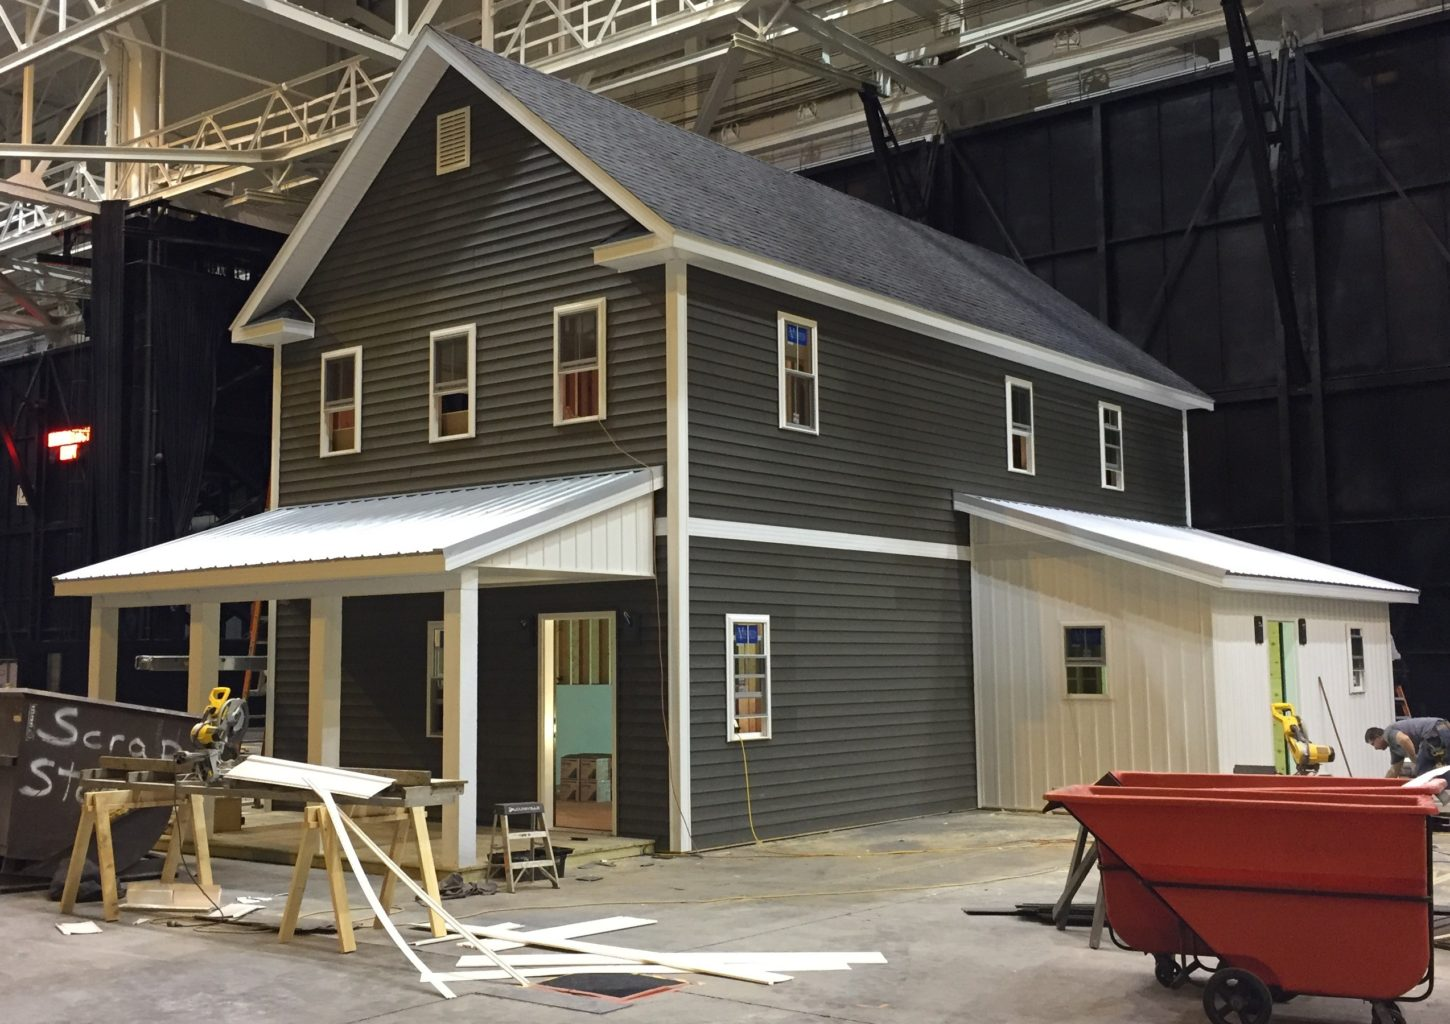 Construction continues on the Weaver Barns Urban